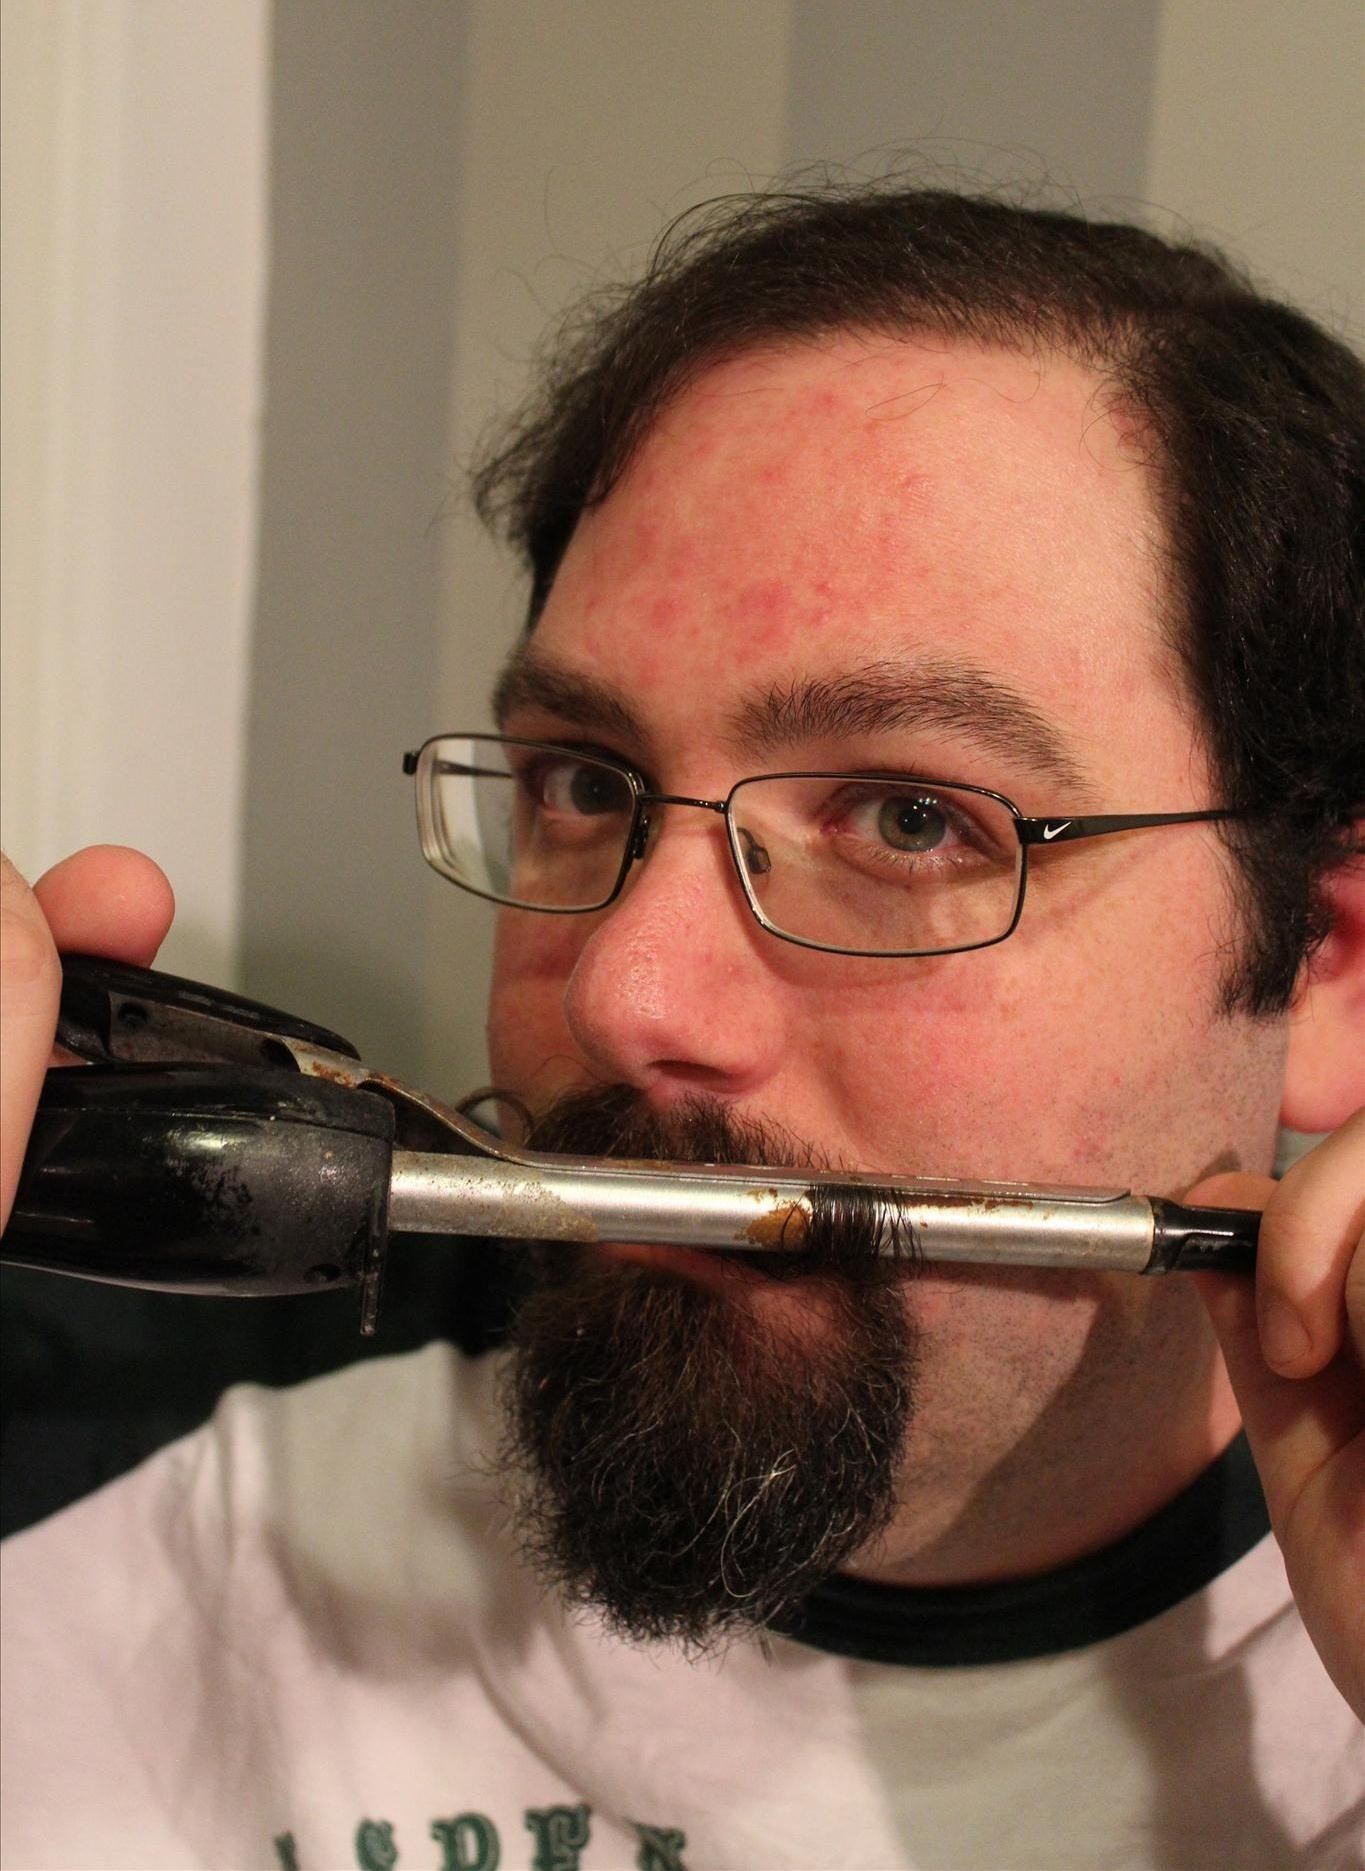 Movember Mustaching Tips: How to Grow, Curl, and Care for a Handlebar